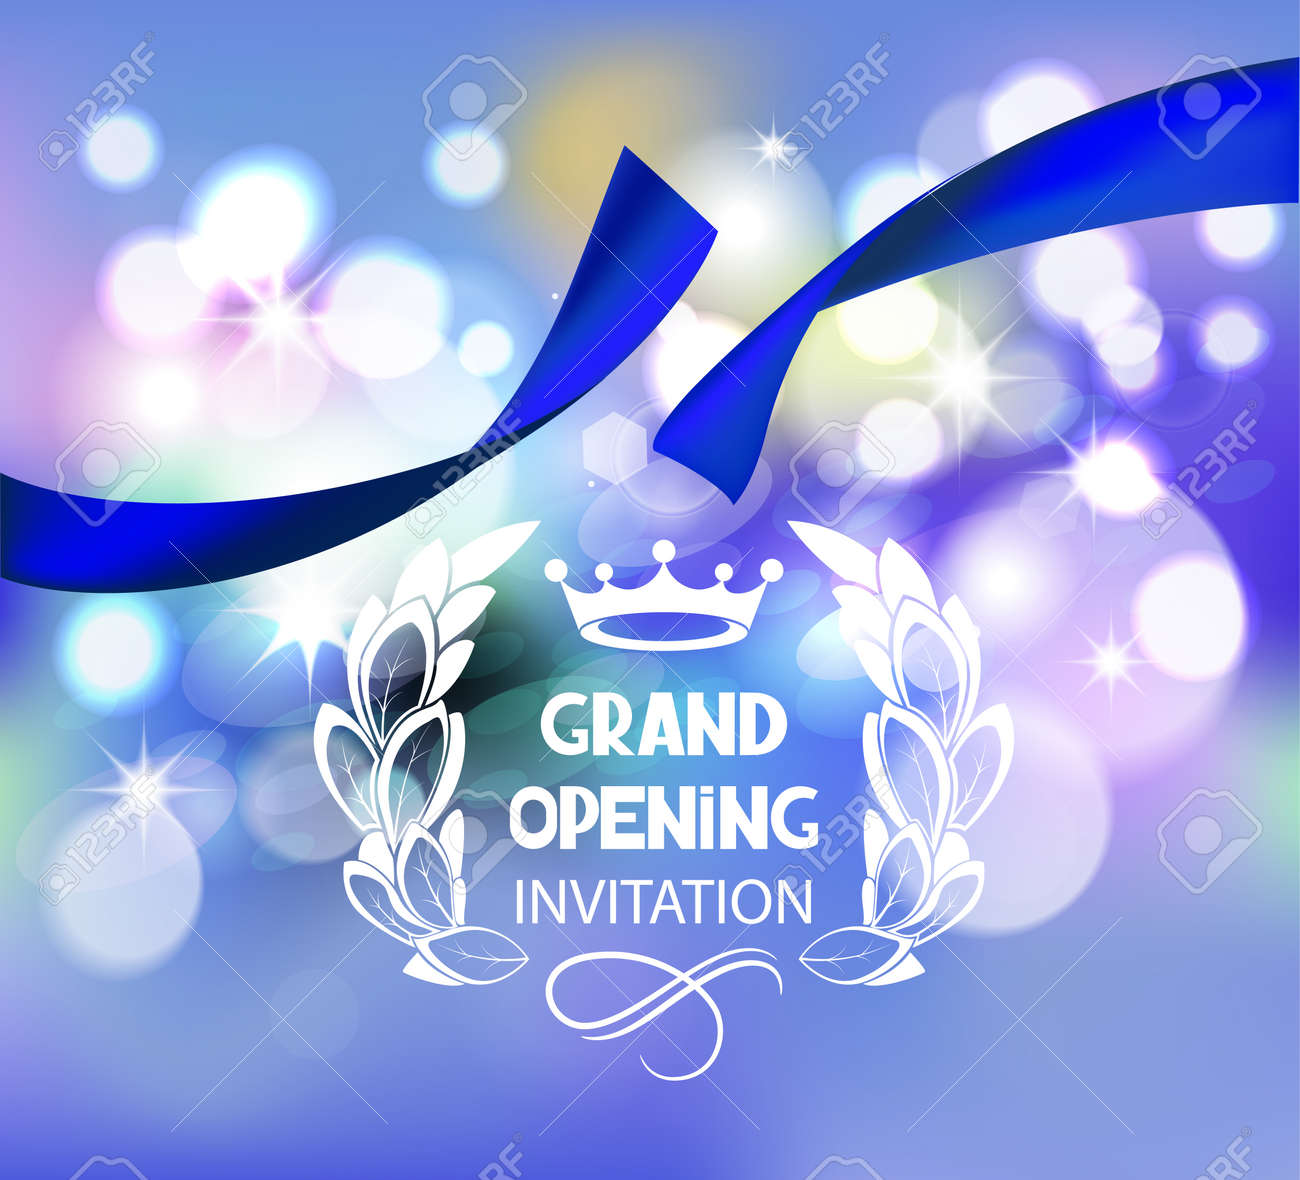 Grand opening invitation card with blue ribbon and bokeh background grand opening invitation card with blue ribbon and bokeh background imagens 55939247 stopboris Gallery